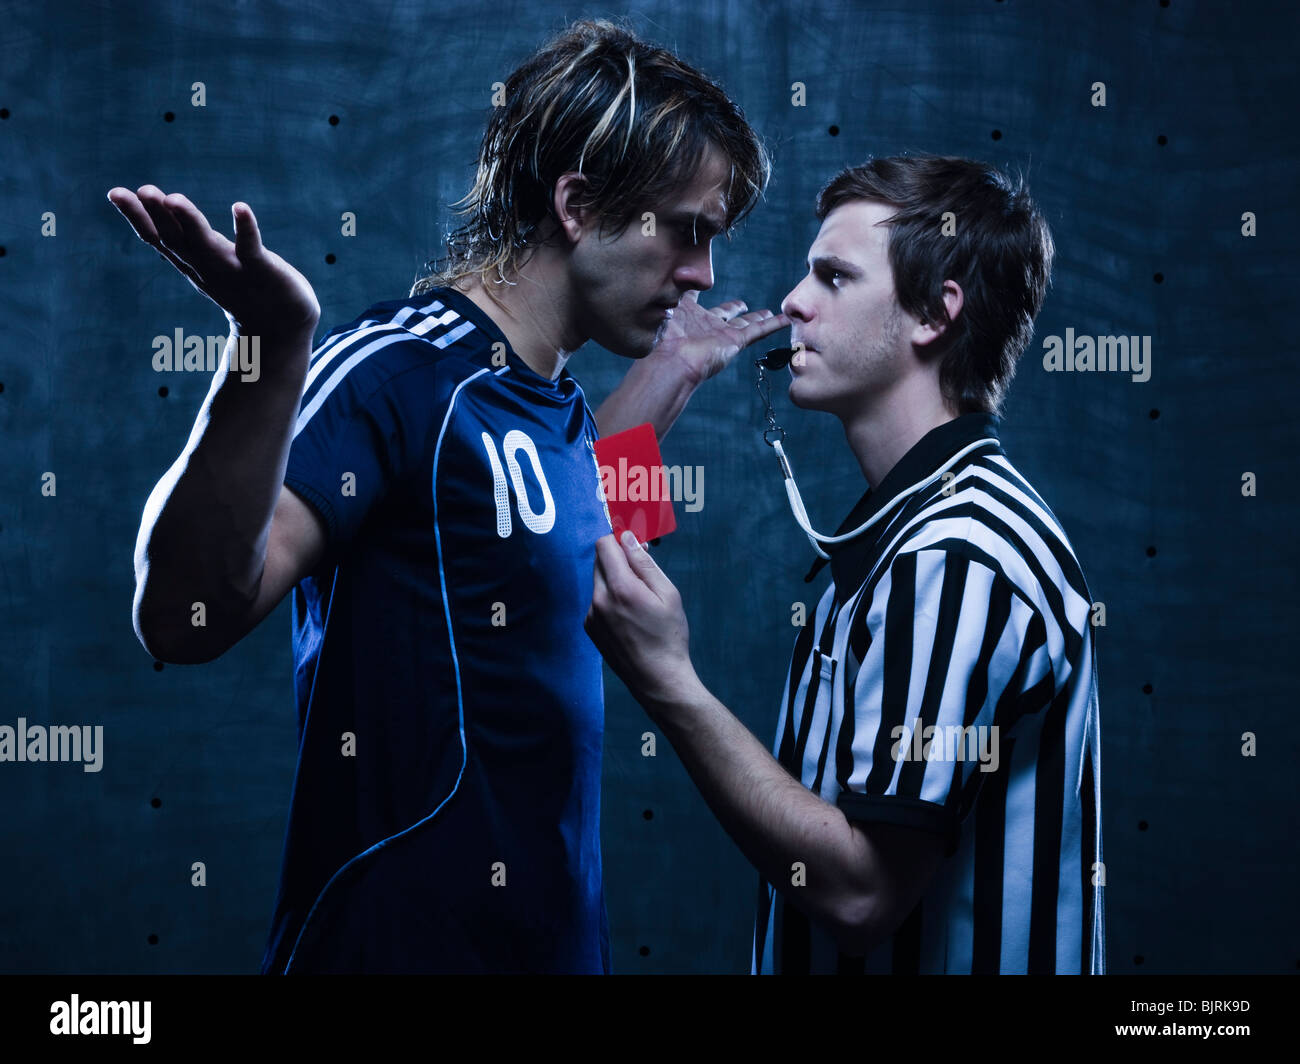 Studio shot of referee showing red card to soccer player - Stock Image